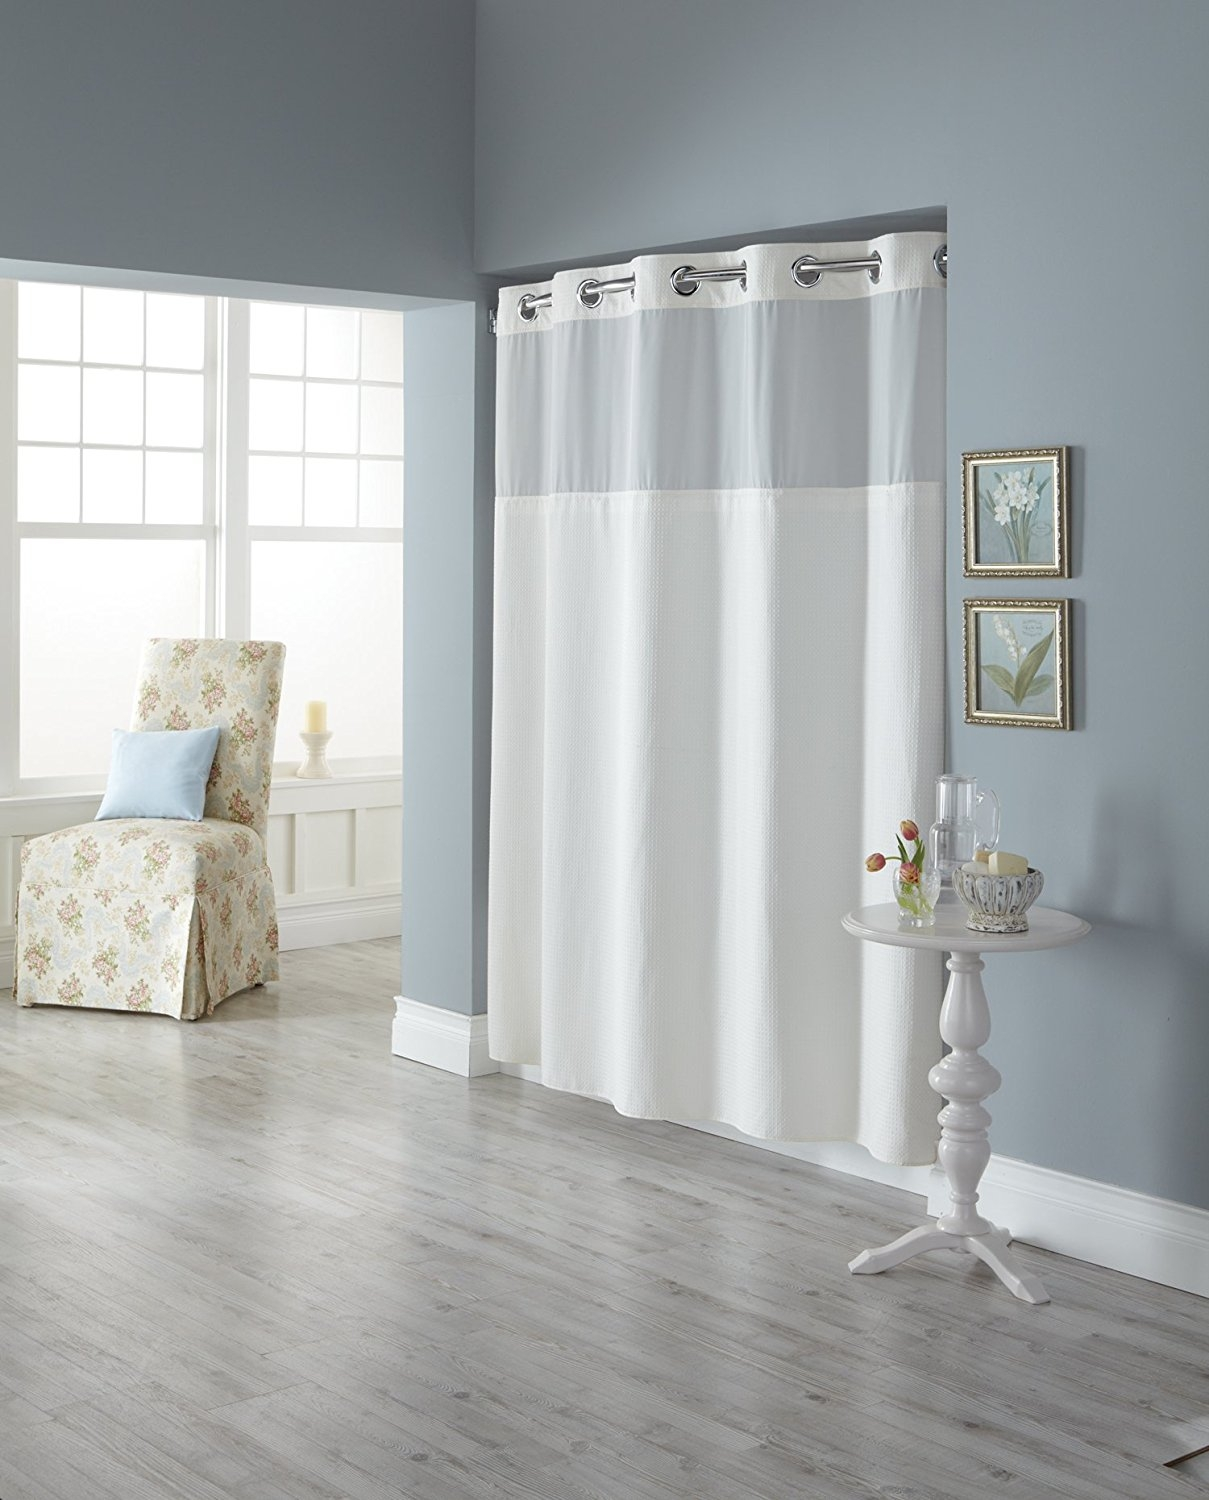 Amazon Hookless Rbh82my417 Fabric Shower Curtain With Built In Hookless Fabric Shower Curtain Liner (Image 3 of 25)